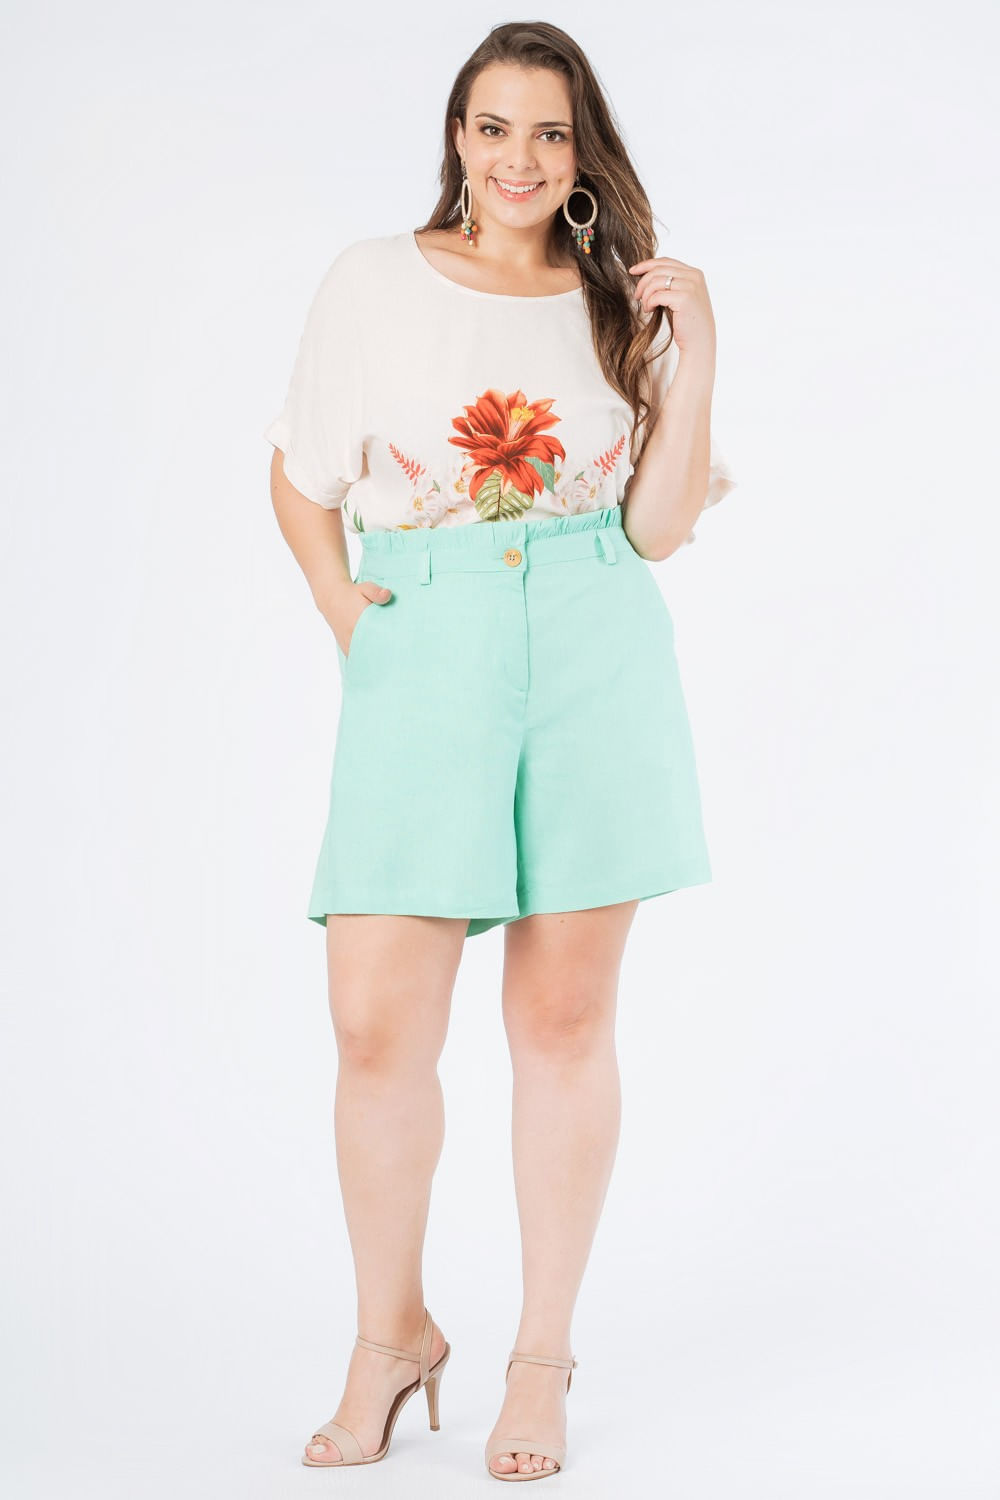 shorts_clochard_linho_plus_size_verde_agua_21914_1_20201203115924